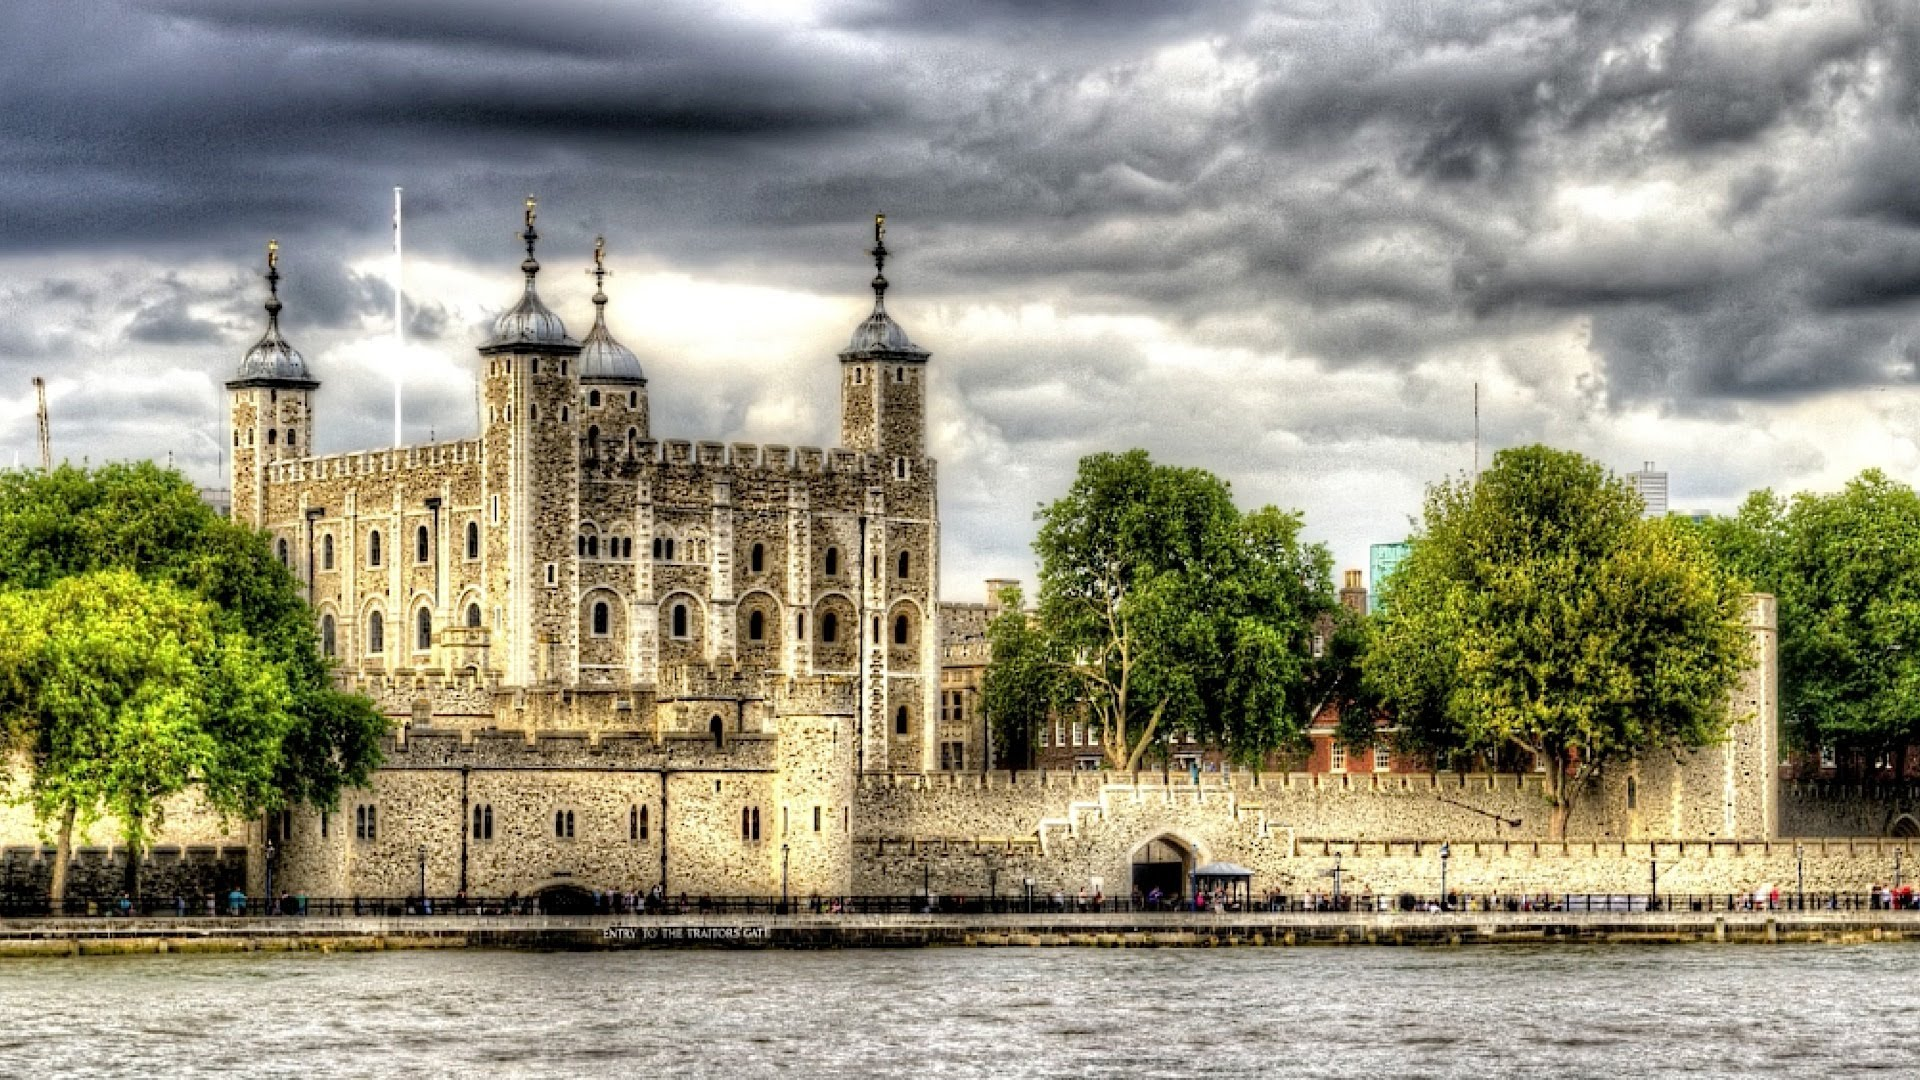 Tower of London London, Visiting the Tower of London | London Travel - YouTube